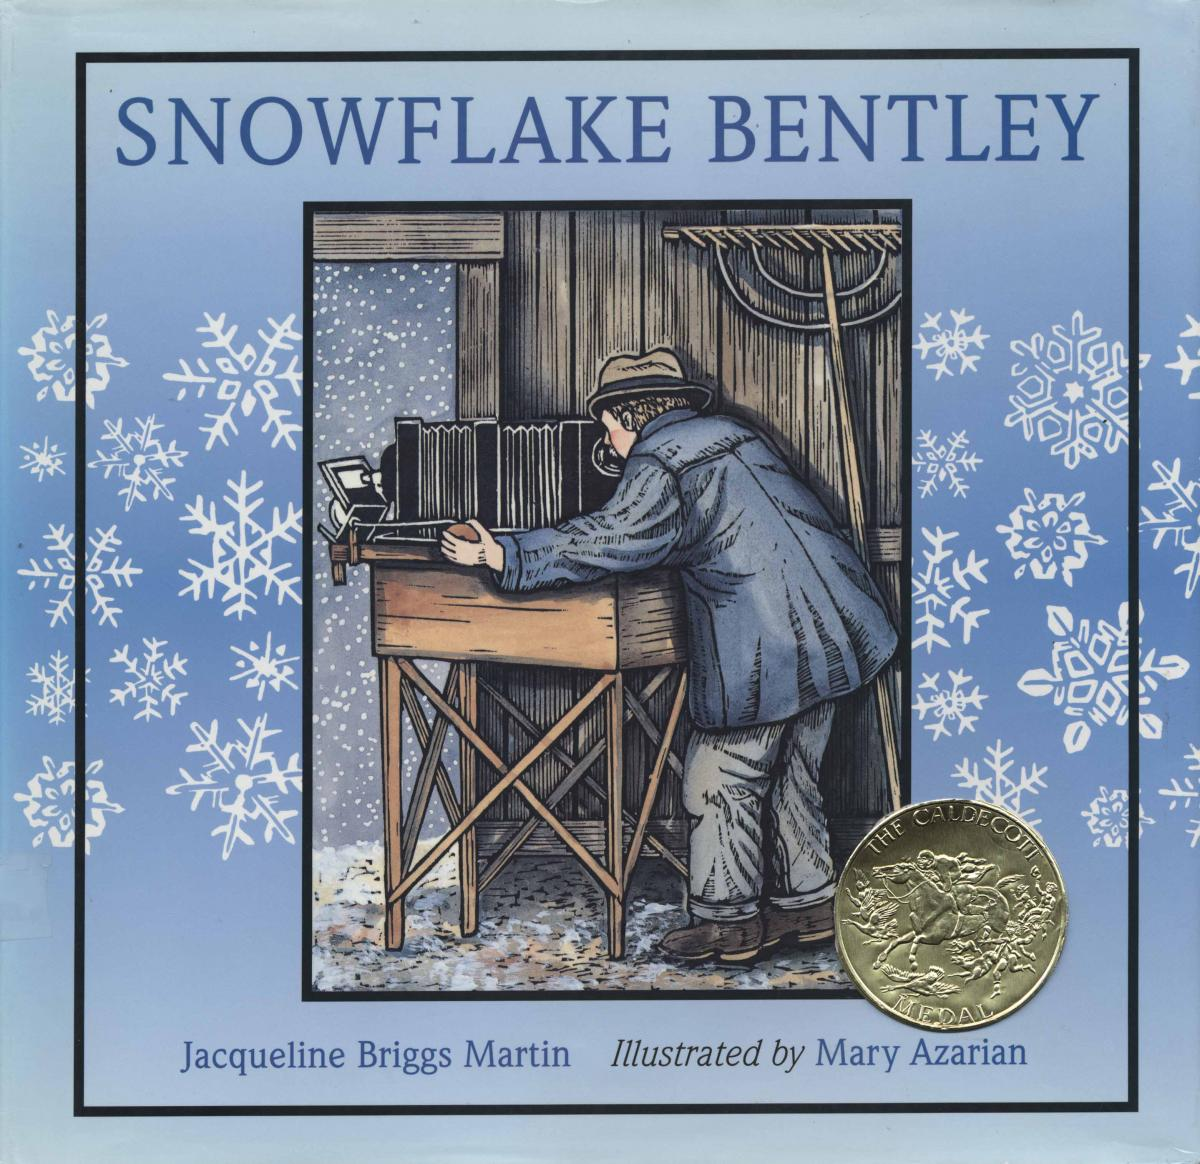 Snowflake Bentley - book cover